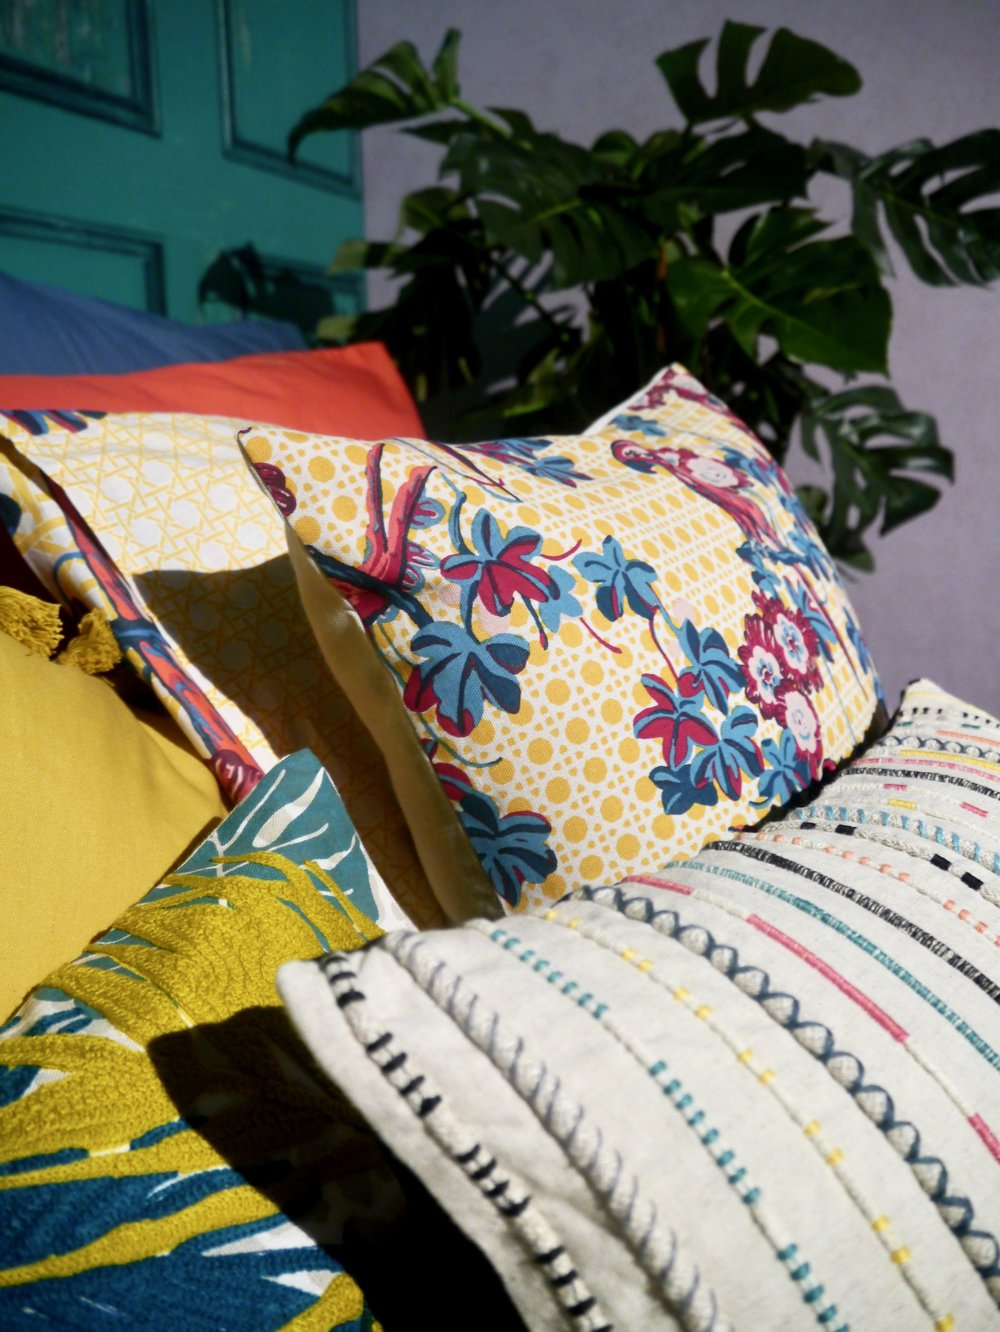 House of Fraser bedding is looking ready for spring with floral pillows and striped sheets - Spring Design Trends by Phoebe Oldrey Interior Design.jpg